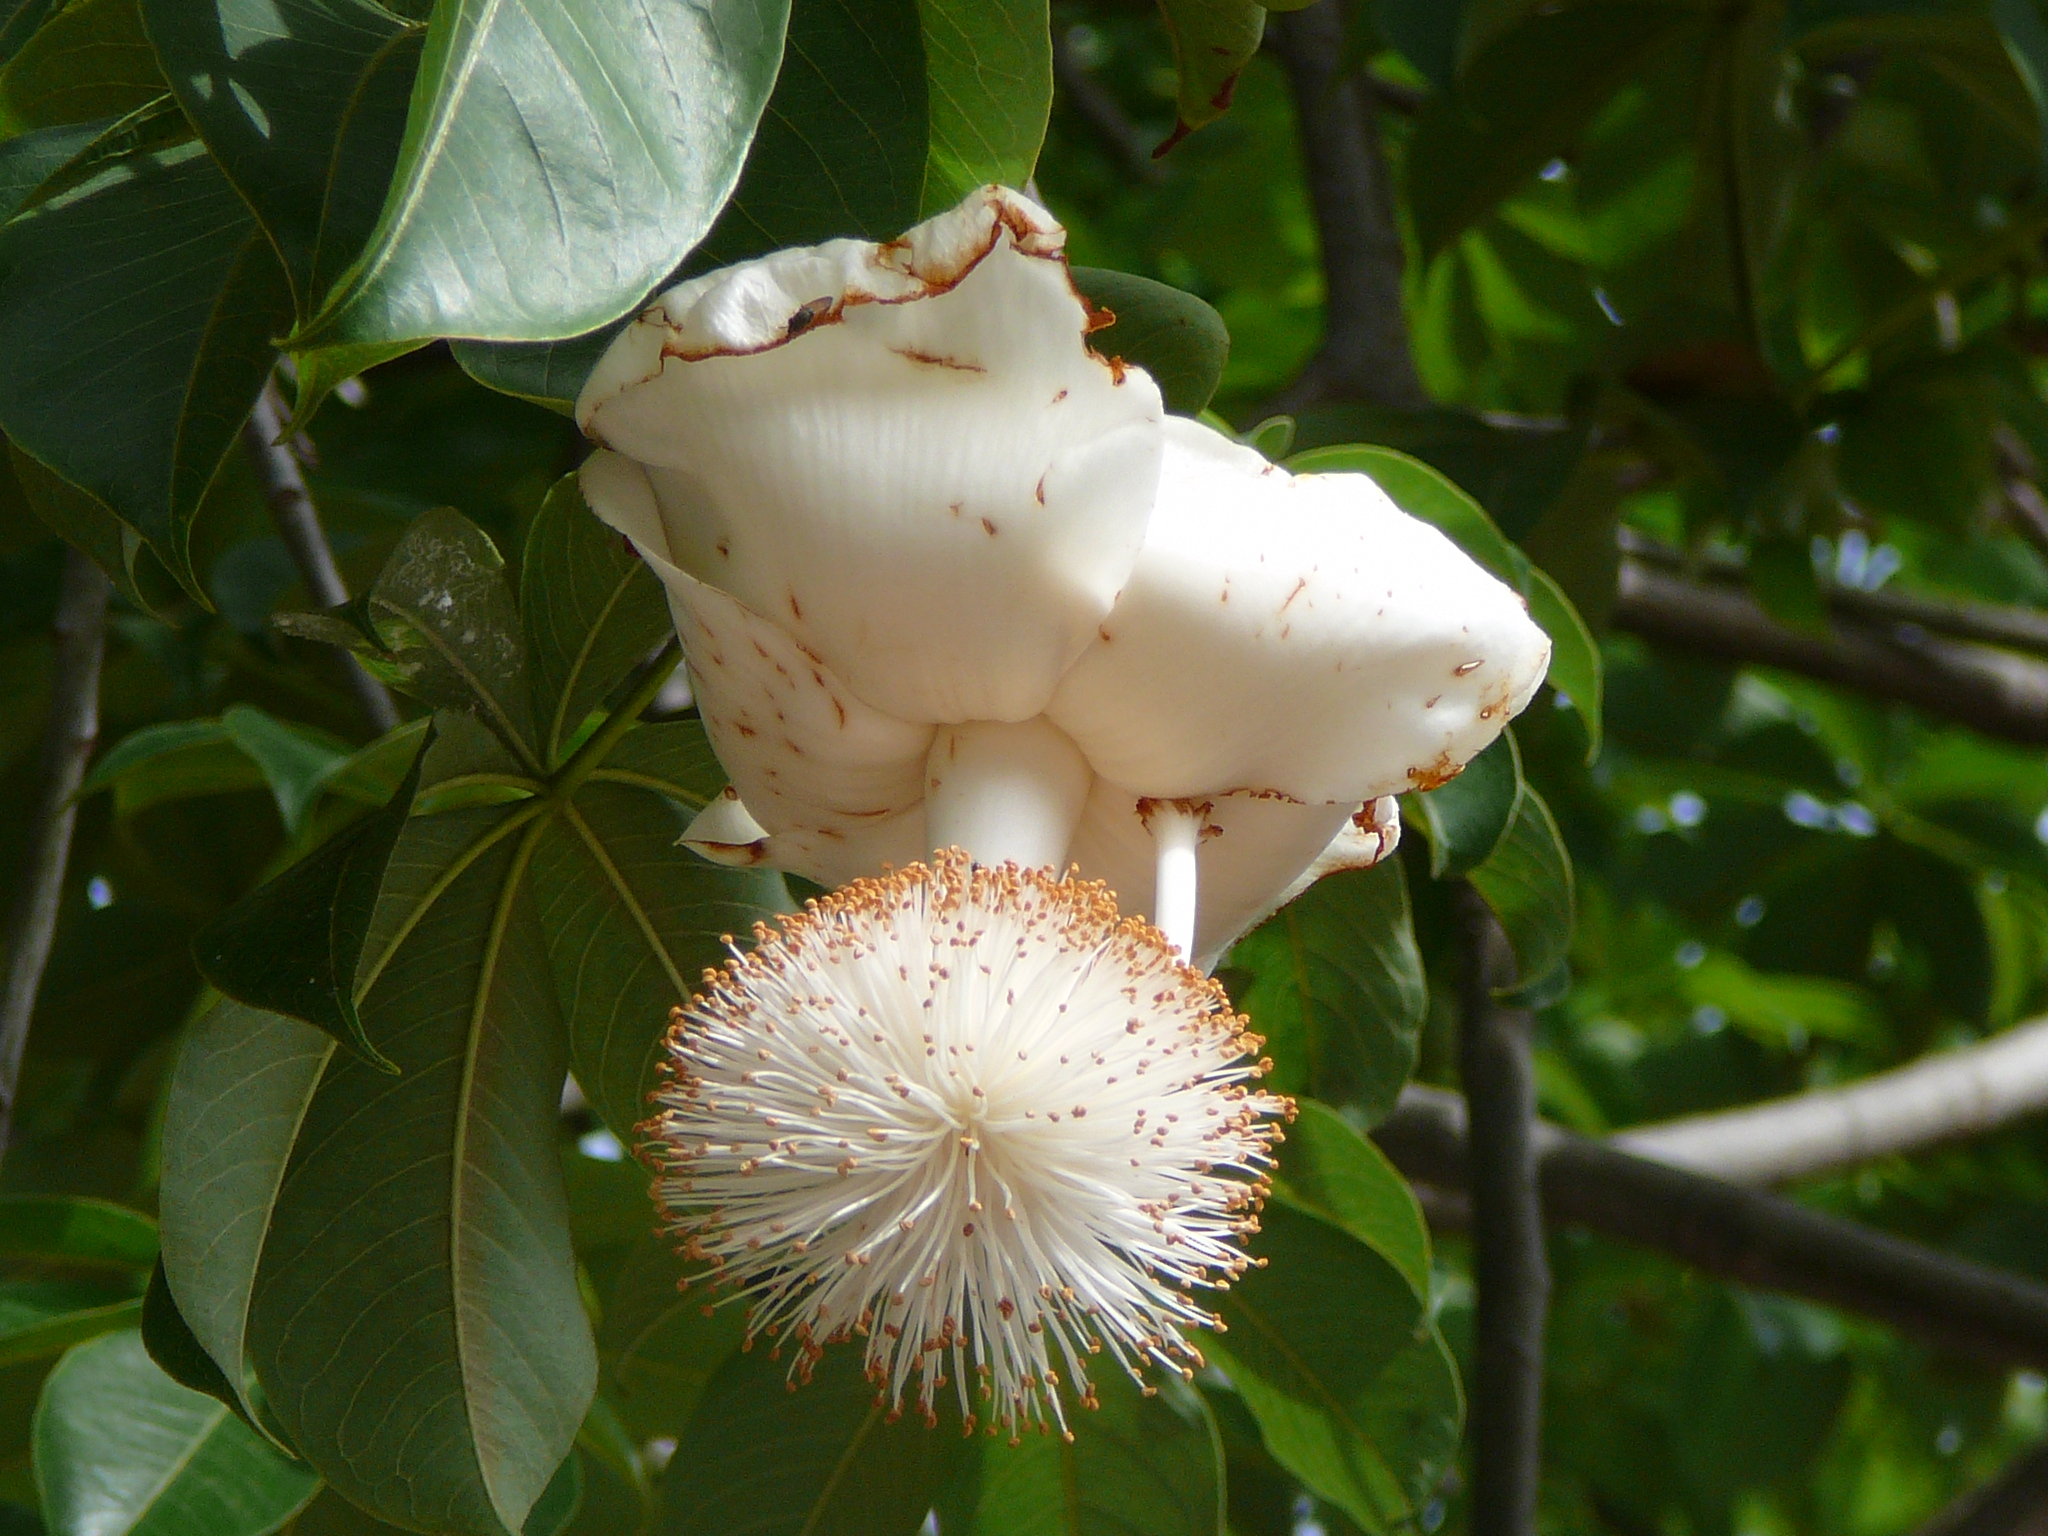 "Image 5: ""Open flower of Baobab Tree"" taken by Adamari. [9]"